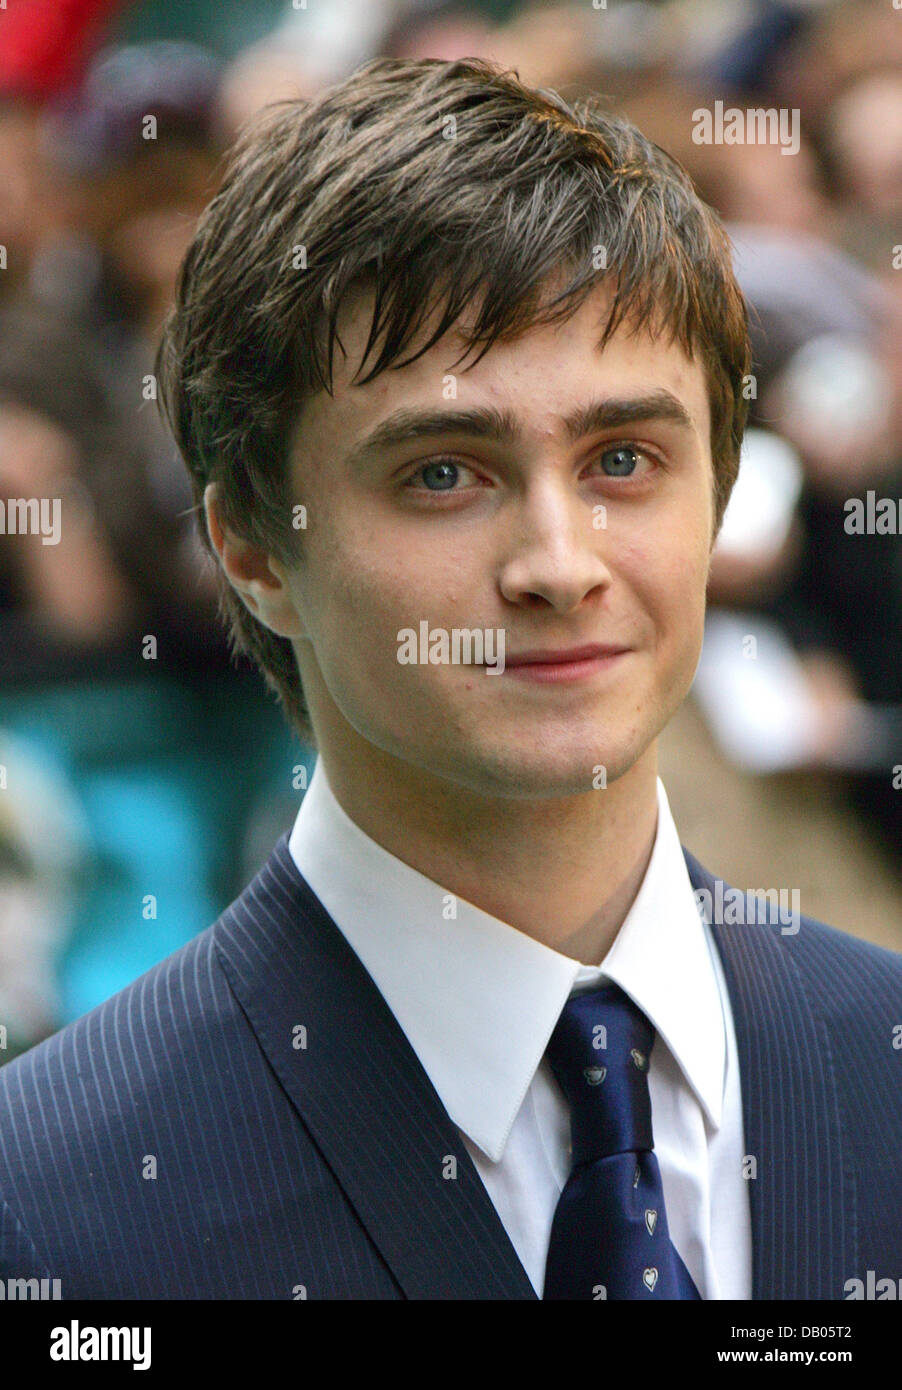 British actor Daniel Radcliffe arrives for the UK premiere of his film 'Harry Potter and the Order of the Phoenix' - Stock Image